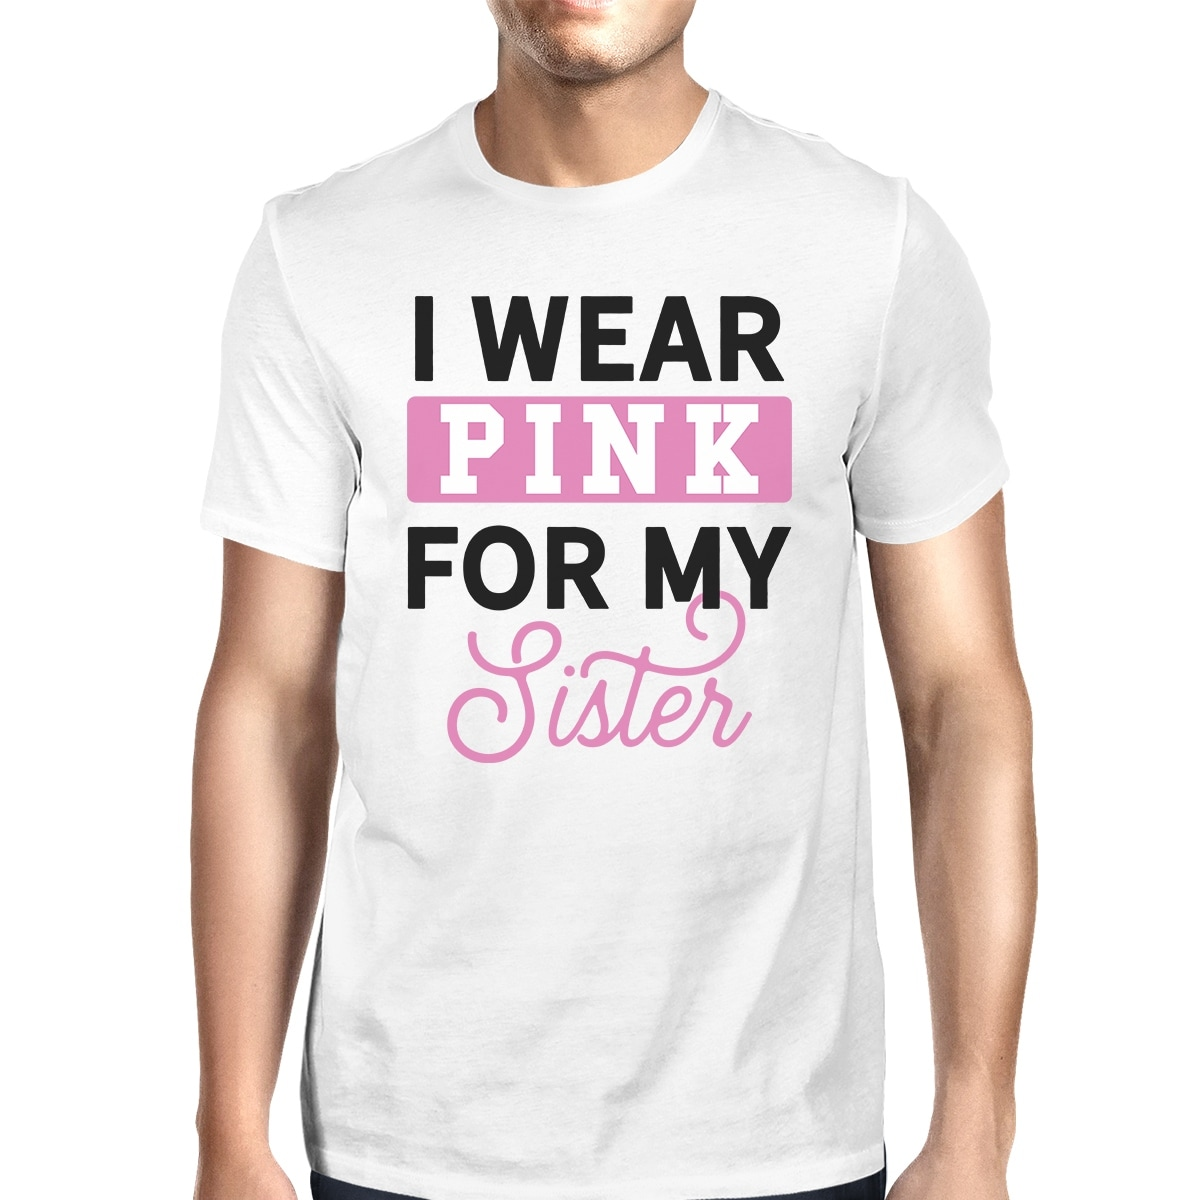 Sister,Friend Men/'s T-shirt Cancer Awareness tee Mom I Wear Pink for My Aunt